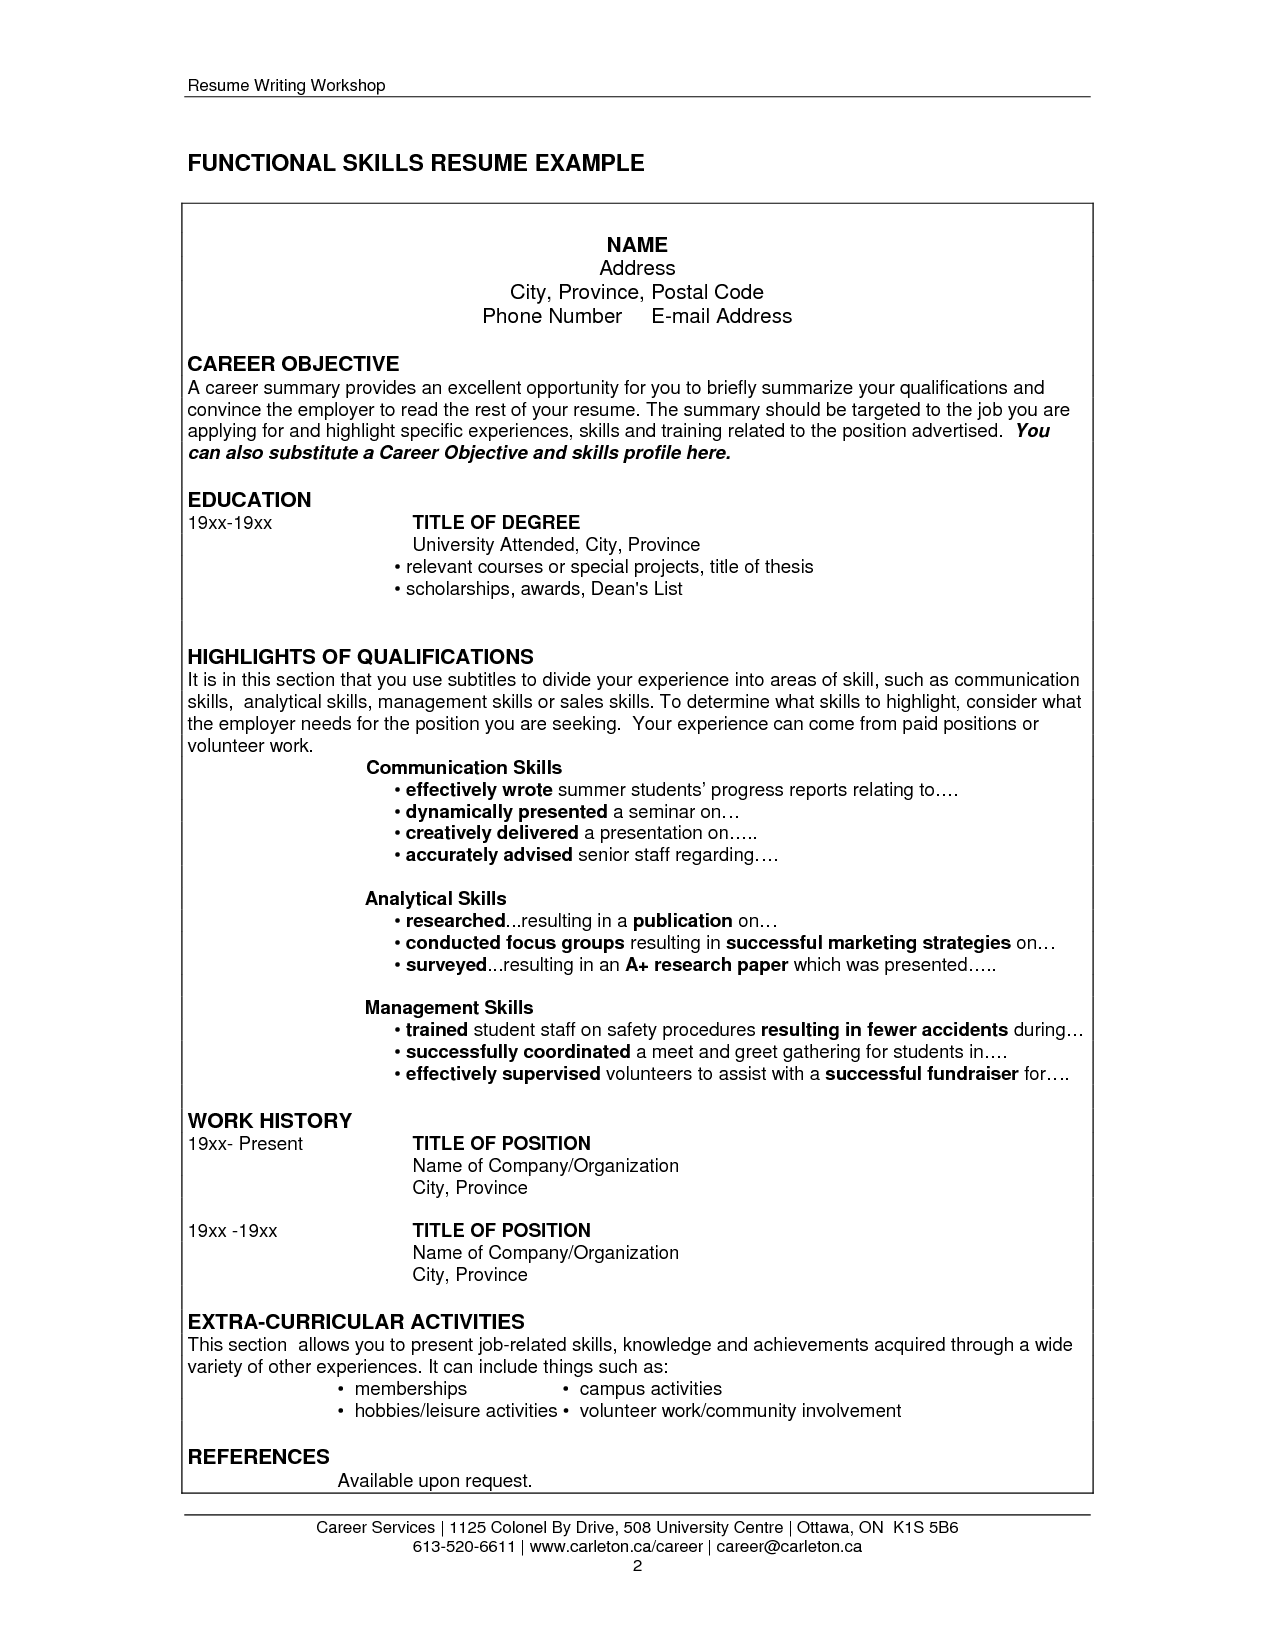 examples for resume skills - Examples Of Resume Skills